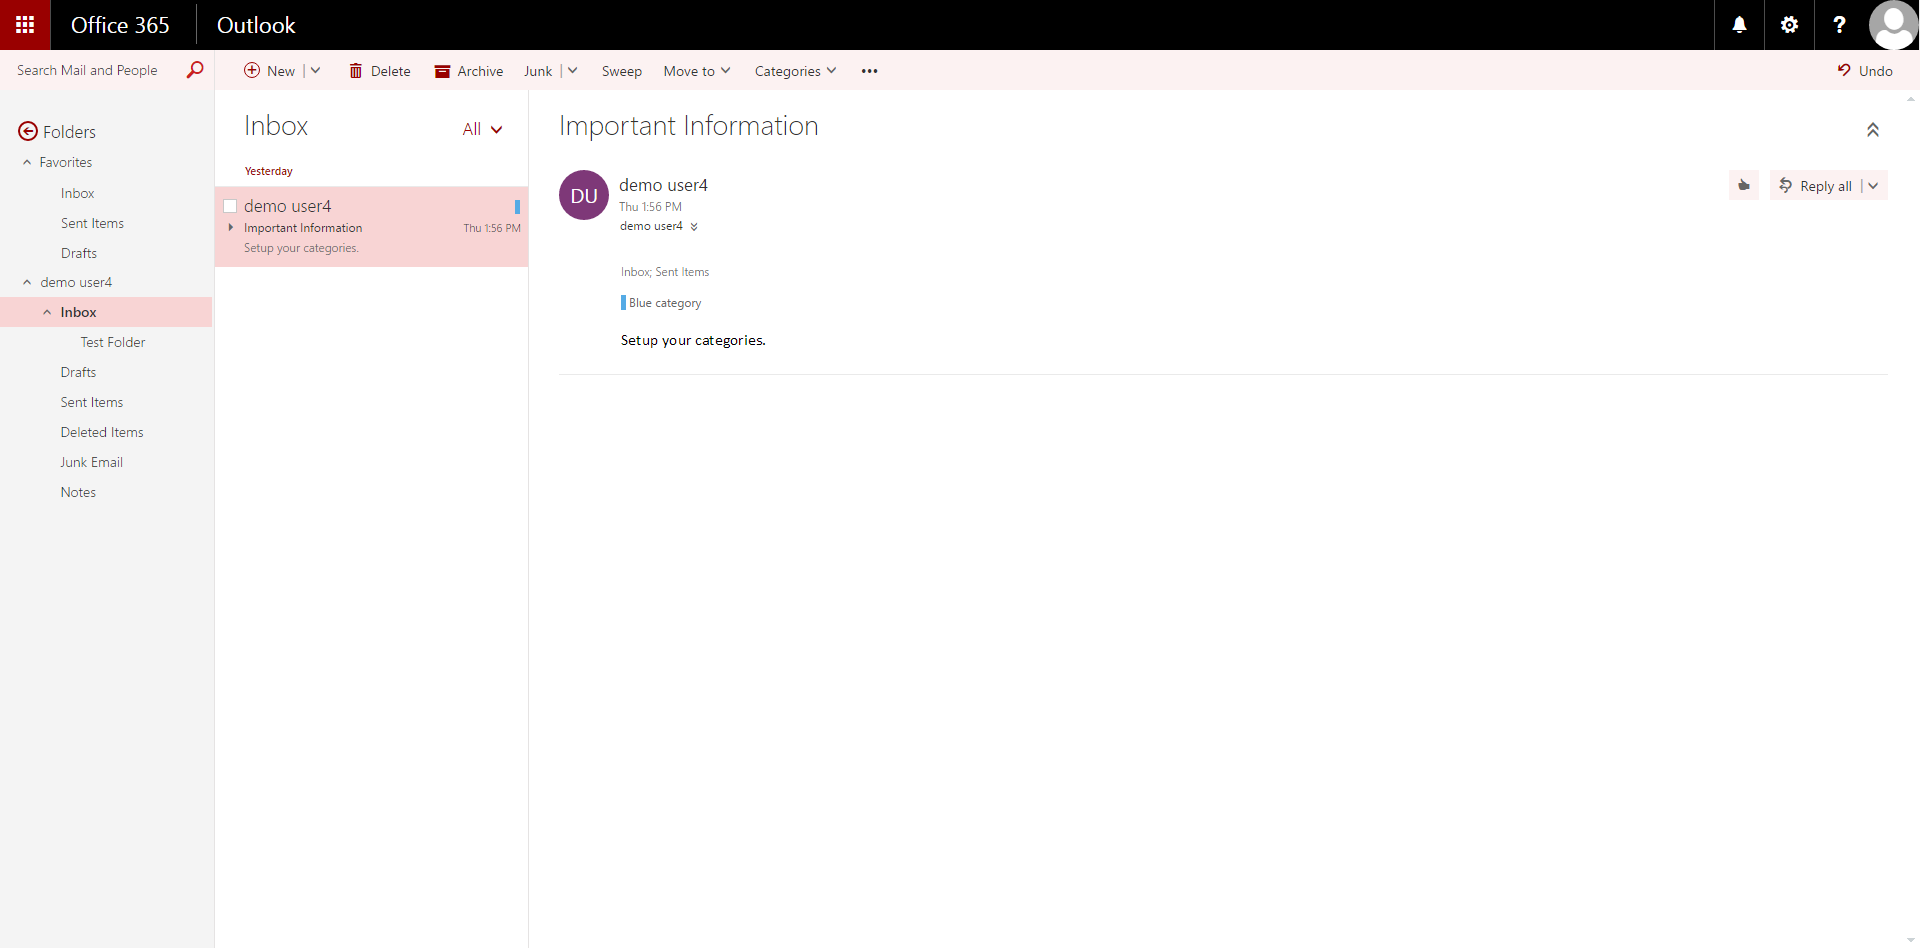 Visualization of the Layout of the Mail Screen in the Outlook Web App